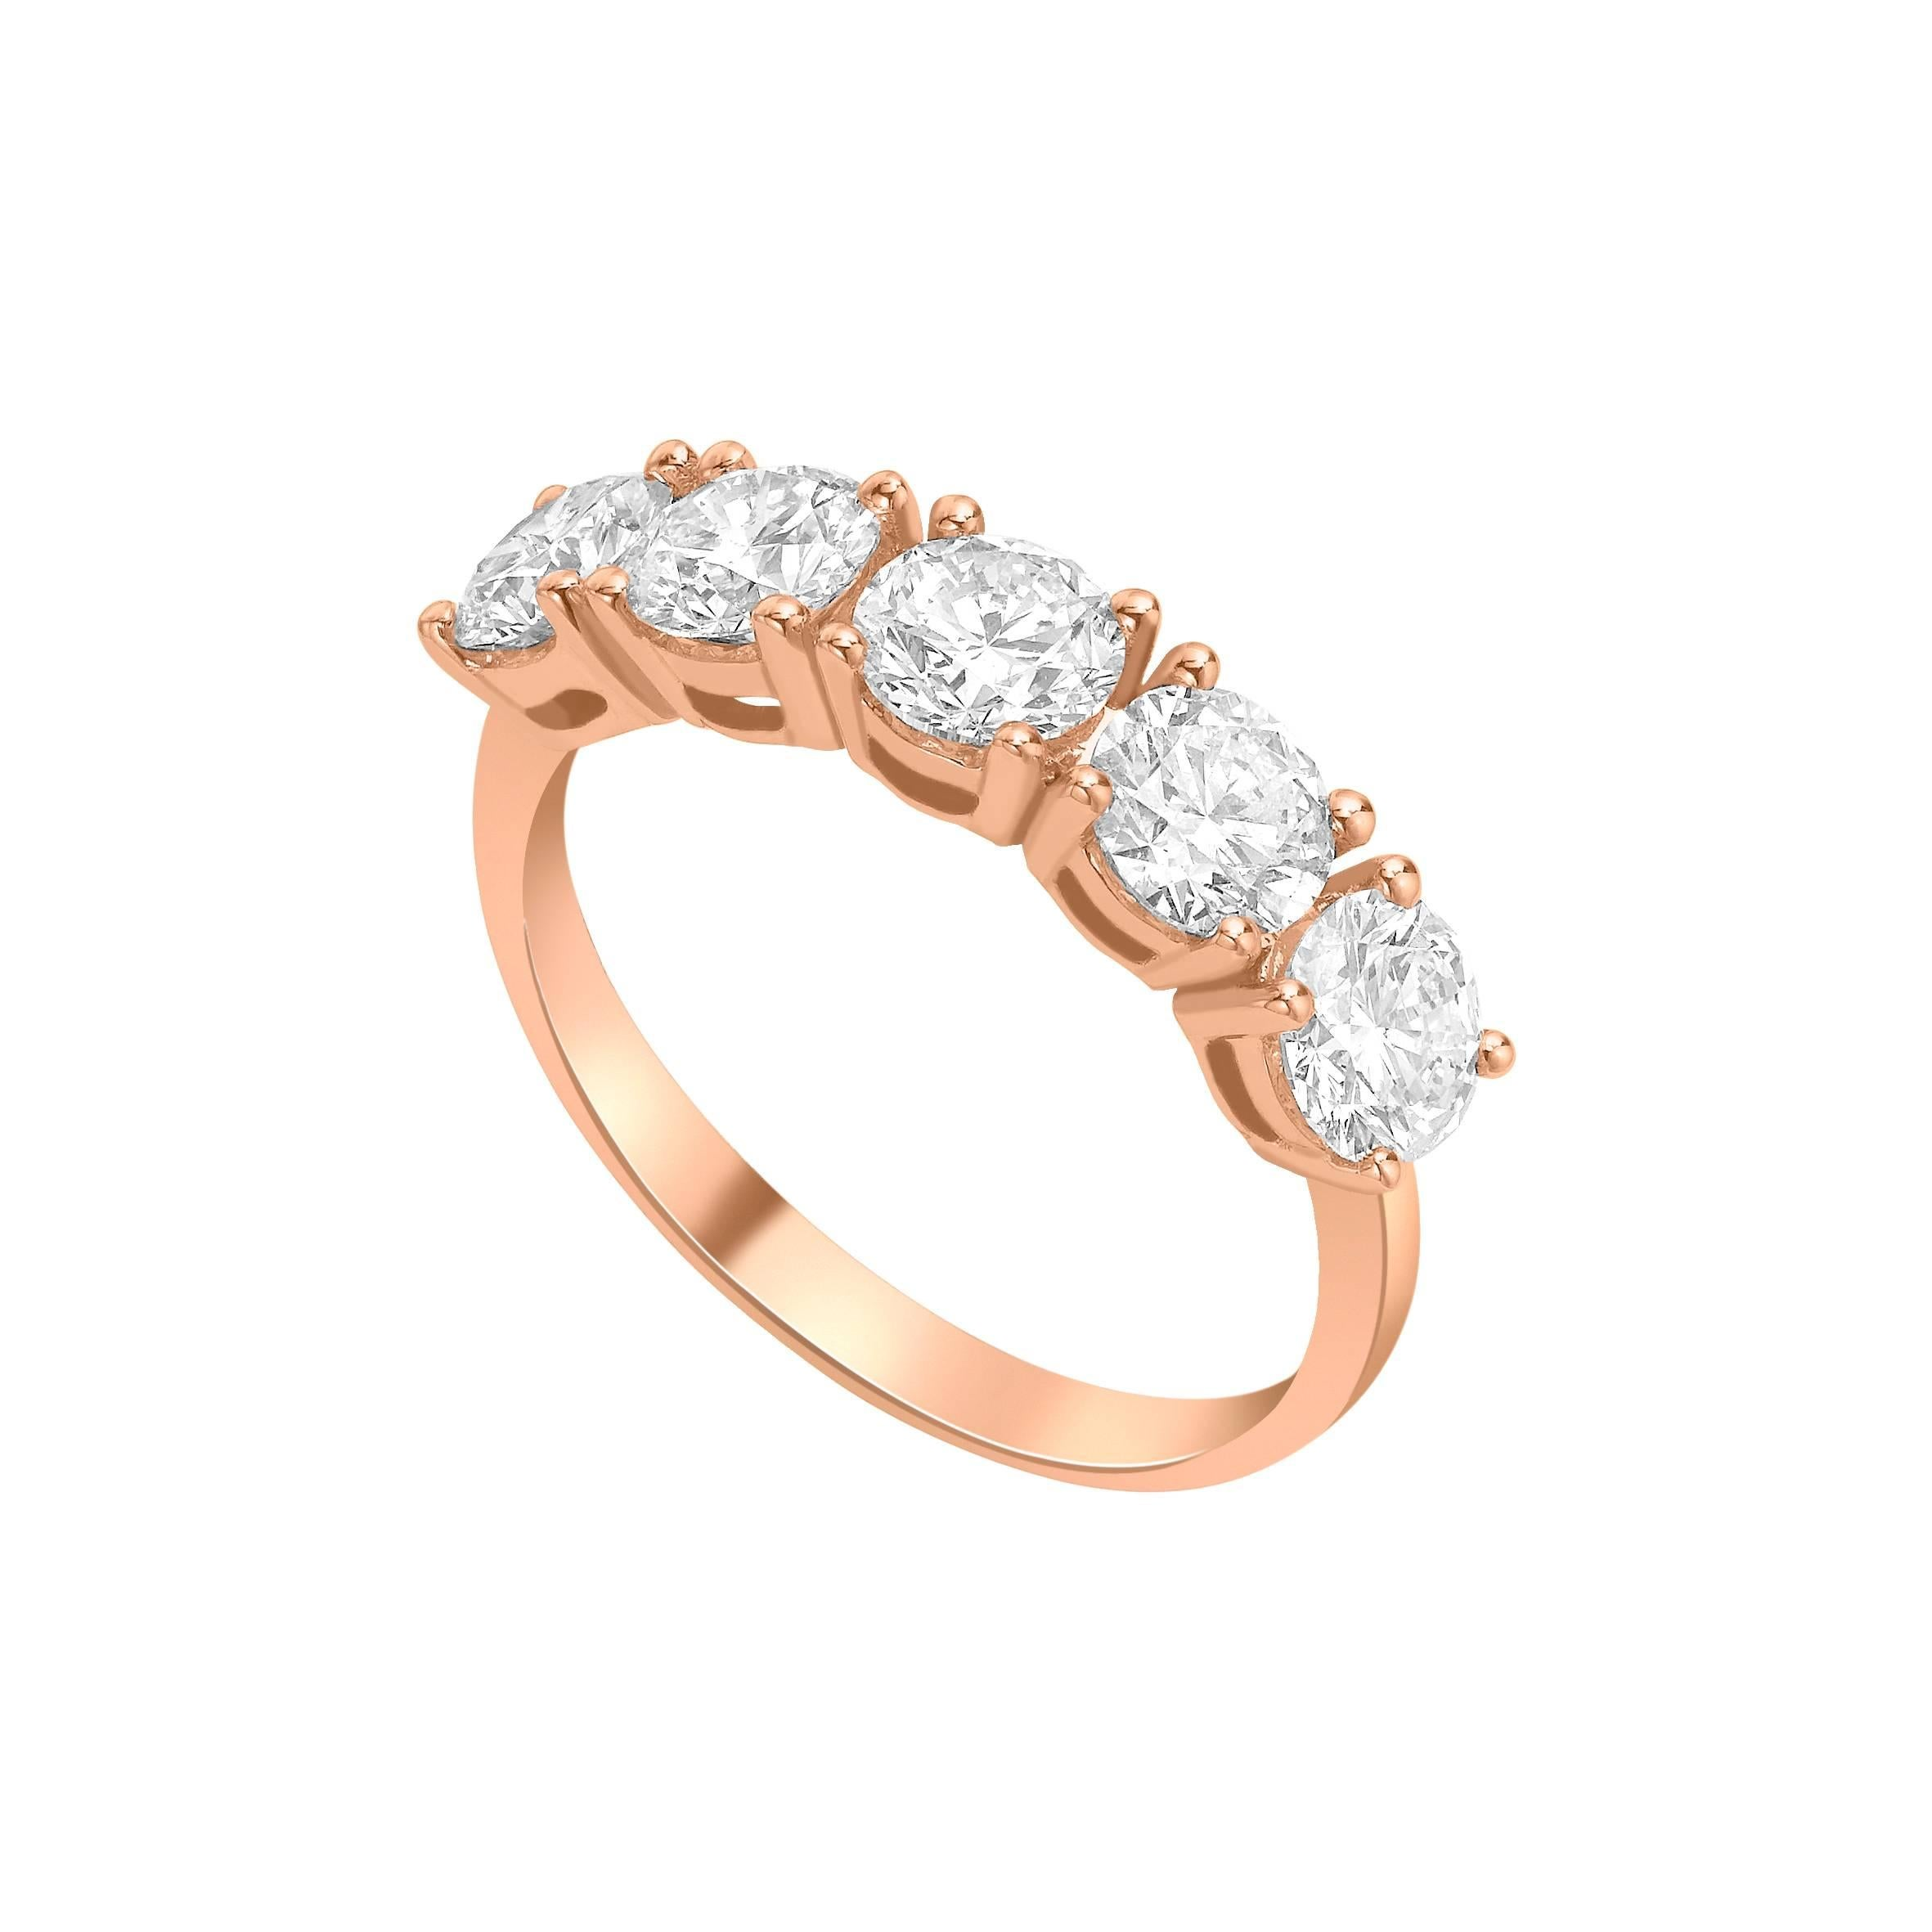 rose ring ringet yellow lane gold modern sue with and in stacking champagne rings engagement by handmade band diamond two products